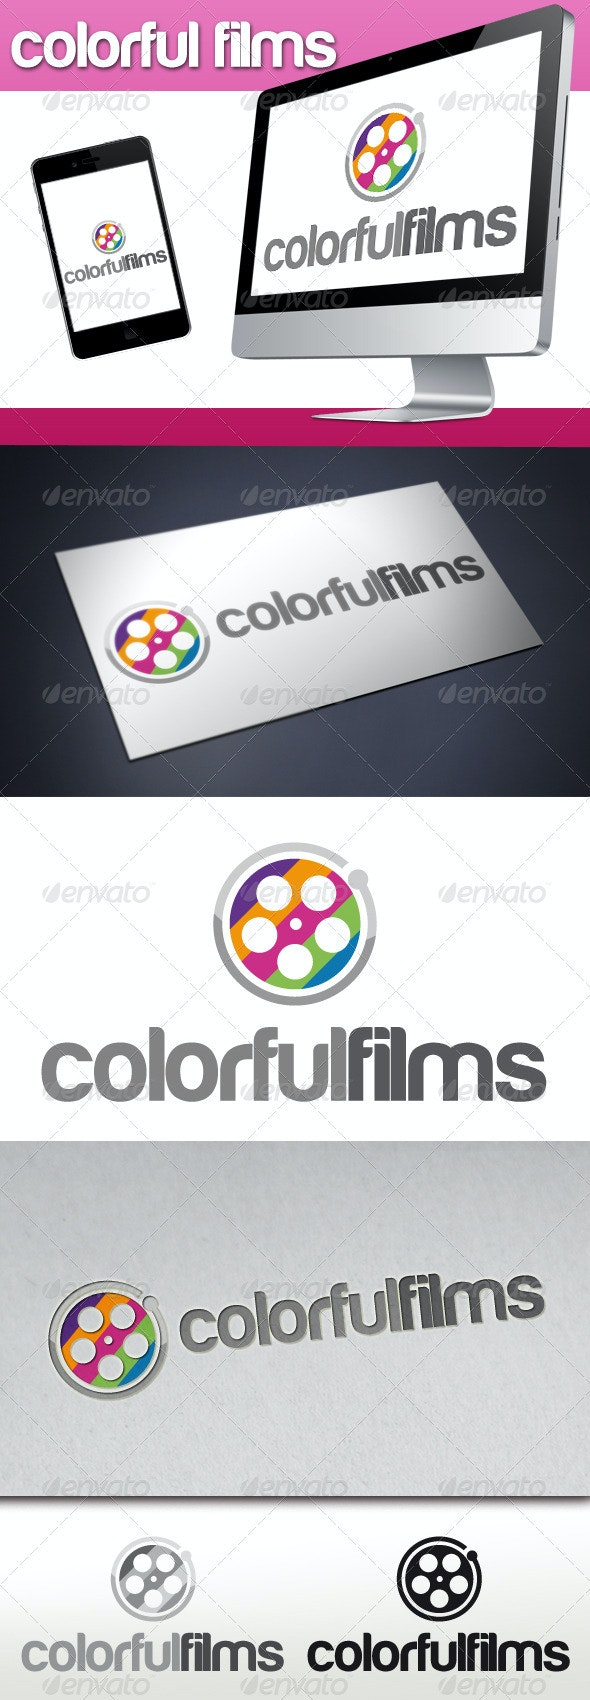 Colorful Films Logo - Objects Logo Templates